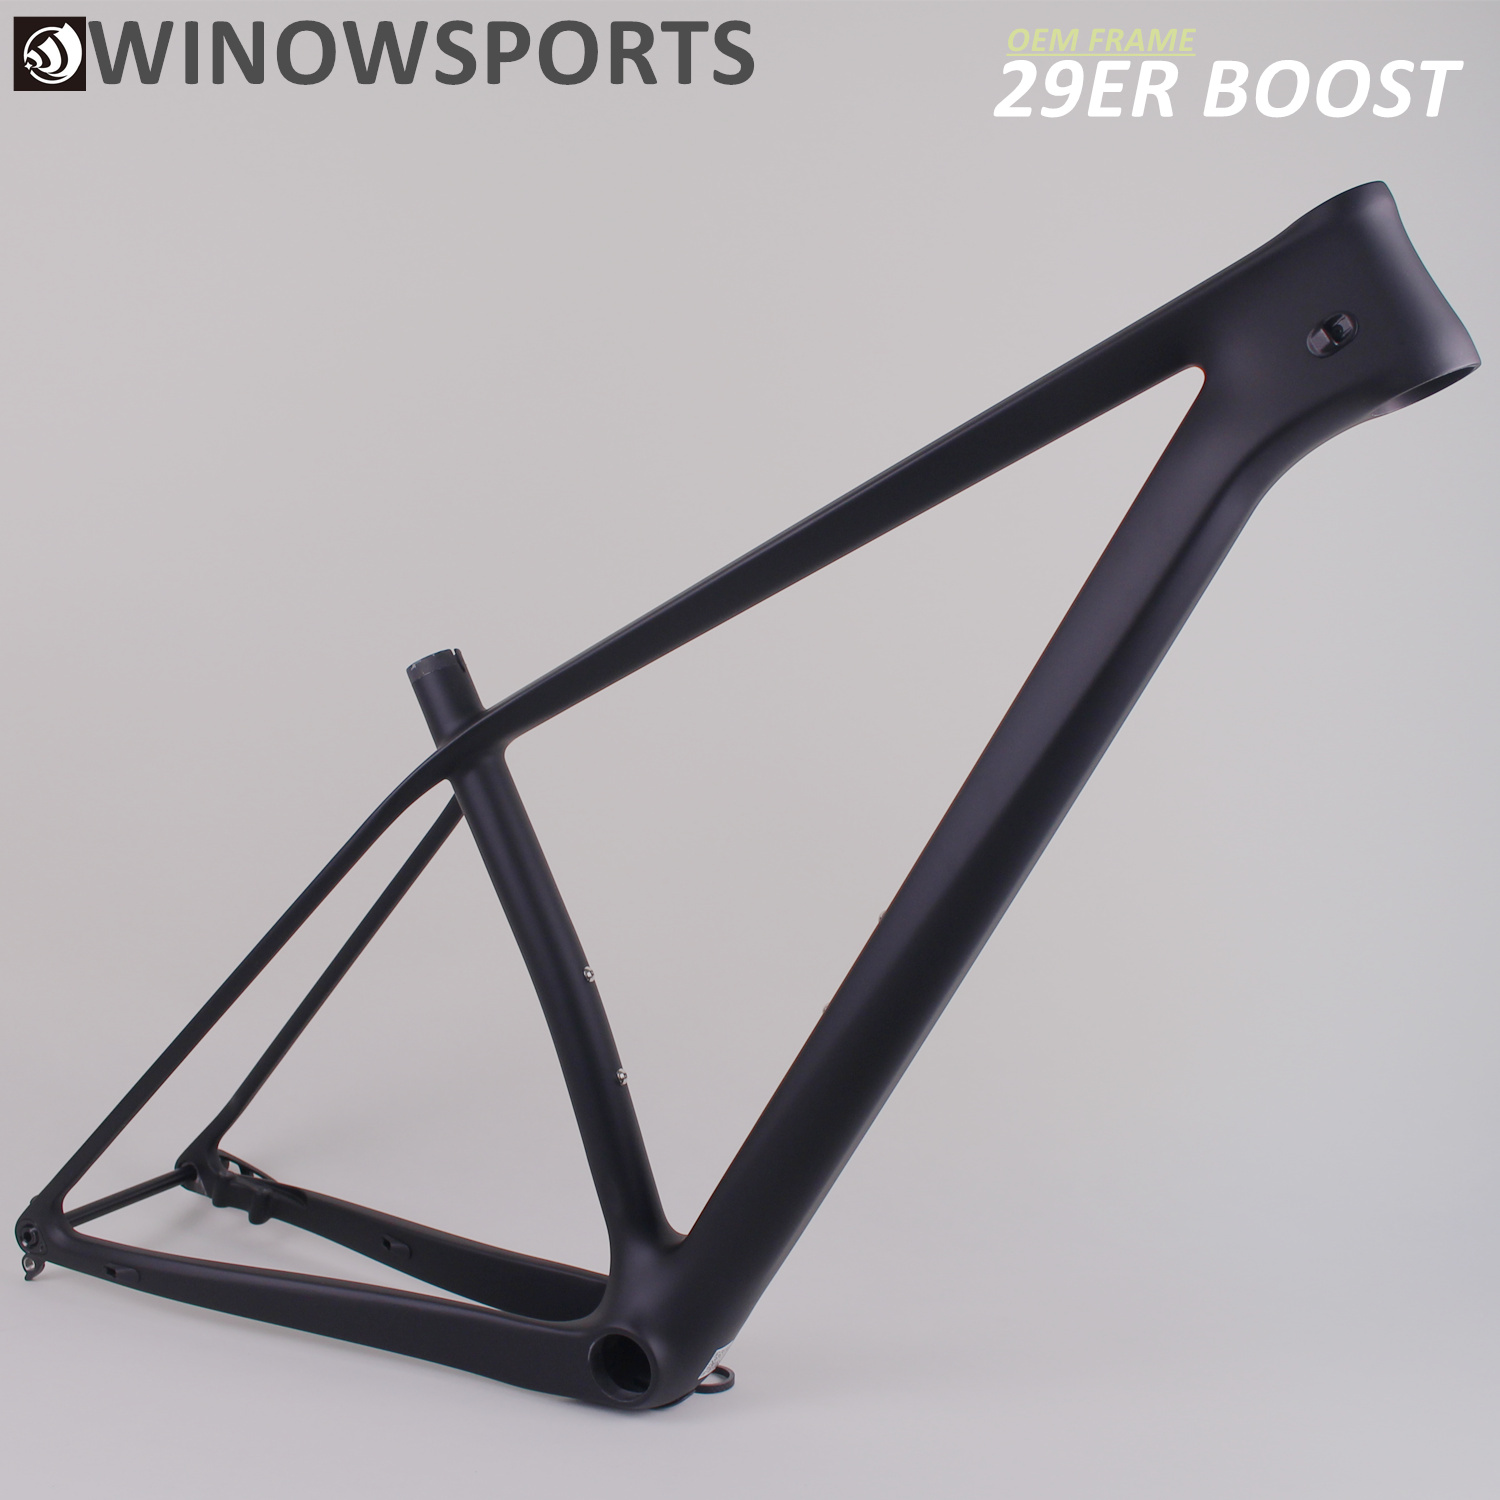 Winowsports UD Black Matte Carbon mtb frame 29er factory <font><b>oem</b></font> design scott-e boost 29 inch 148mm rear spacing carbon <font><b>bike</b></font> frame image